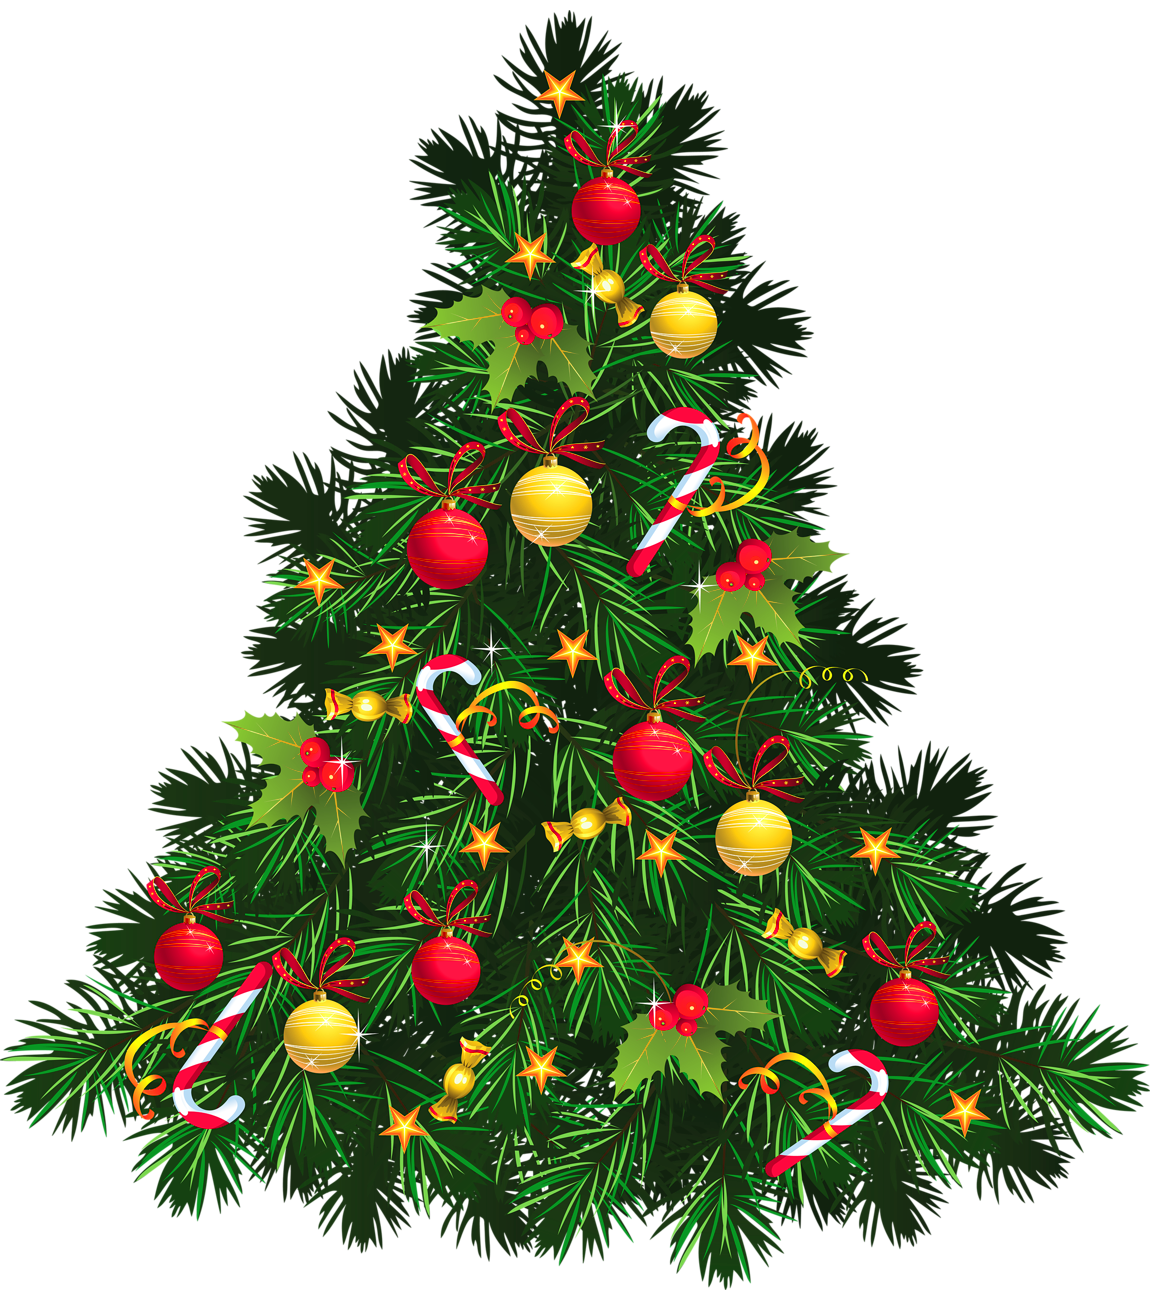 Christmas clipart transparent png free download Transparent Christmas Tree with Ornaments PNG Picture free download